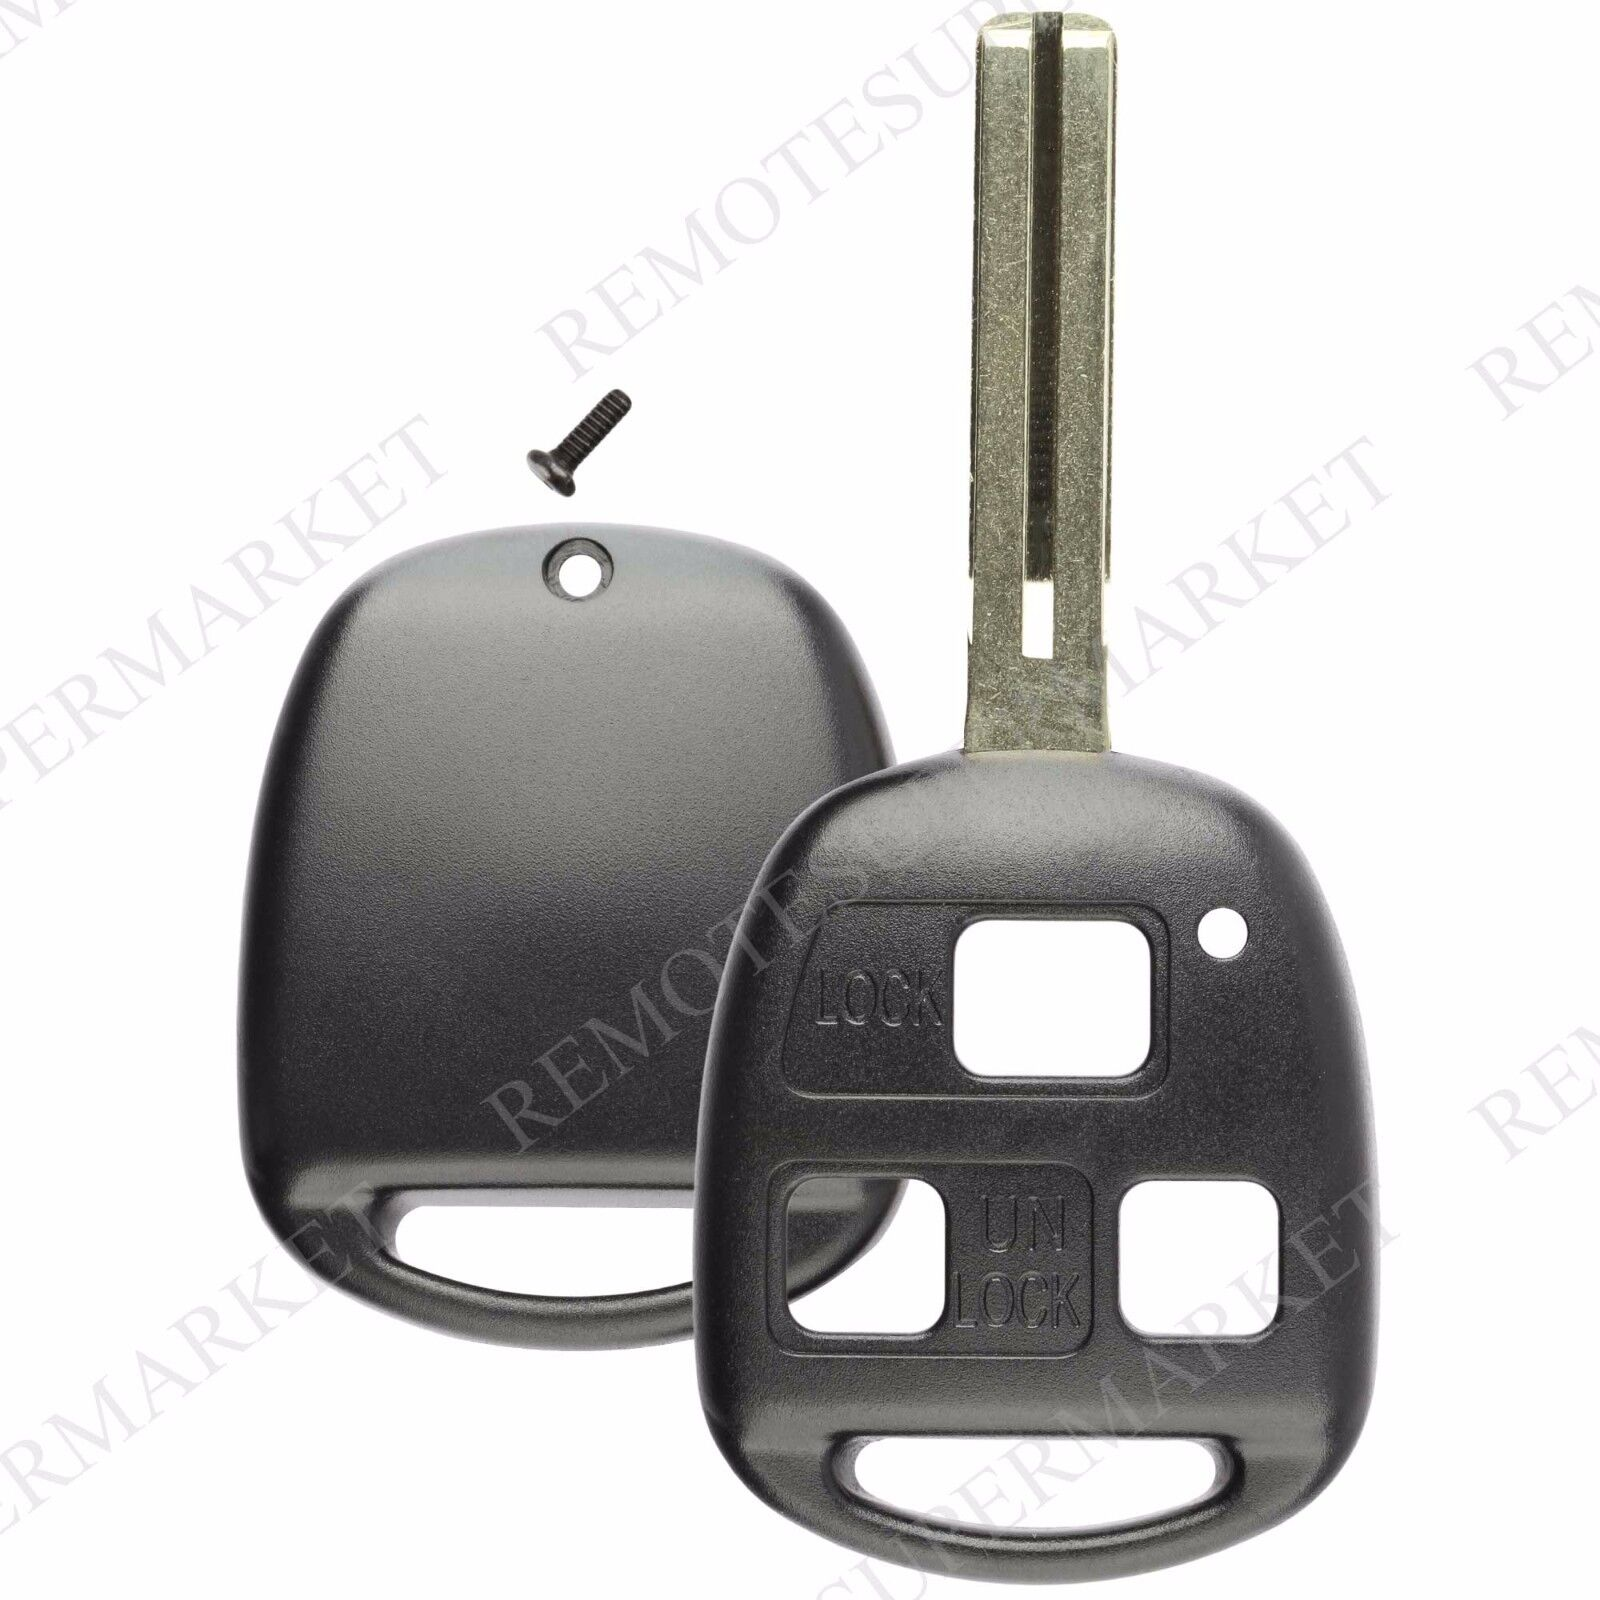 ... Replacement For Lexus GX470 LX470 Remote Car Keyless Entry Key Fob  Shell Case 2 Of 5 Replacement For Lexus GX470 LX470 Remote Car Keyless ...